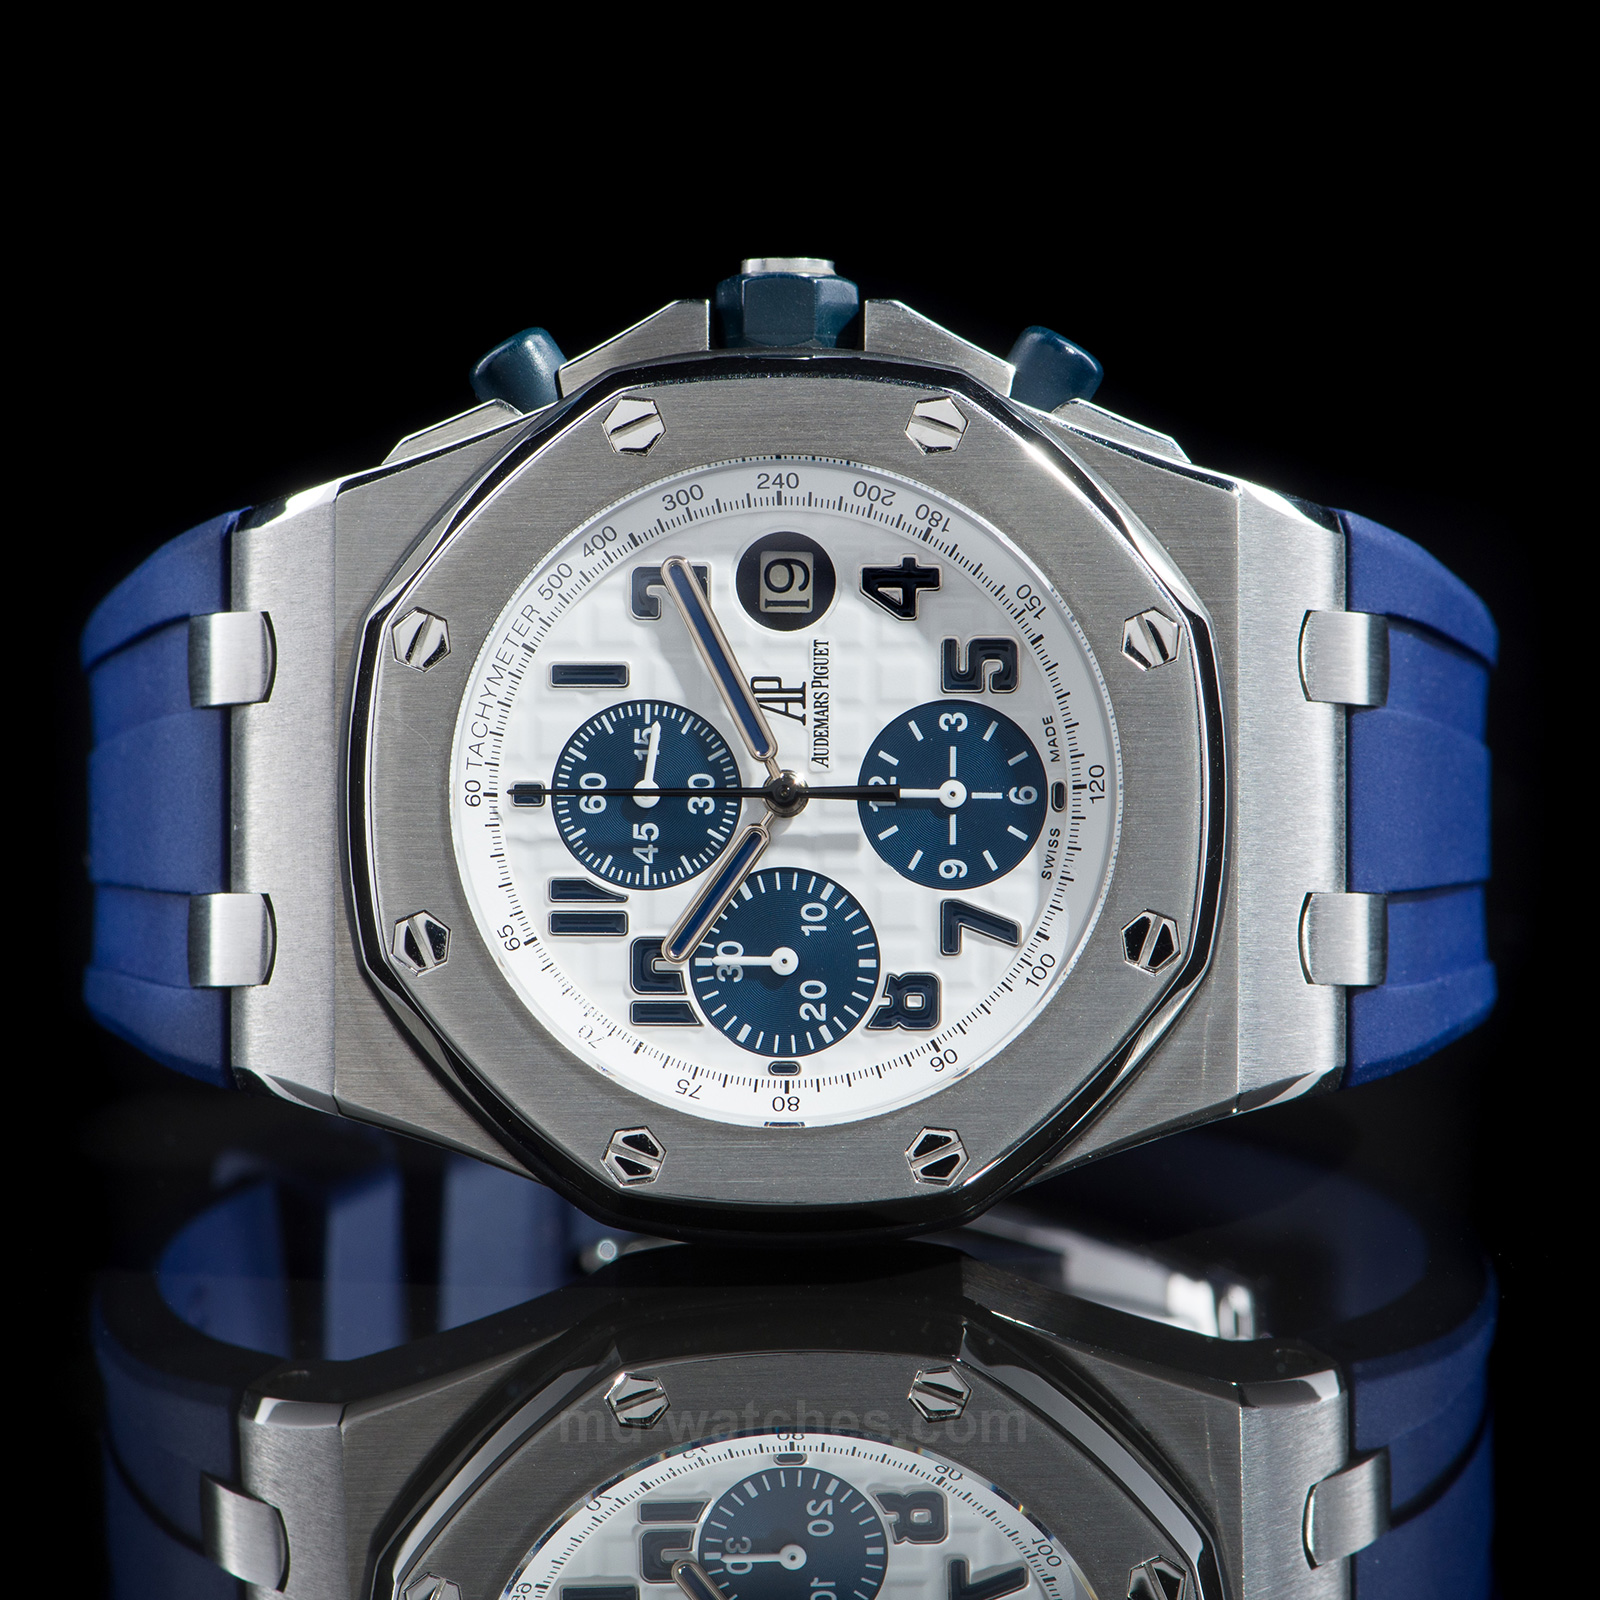 Audemars Piguet Royal Oak Offshore Chronograph Navy Ref